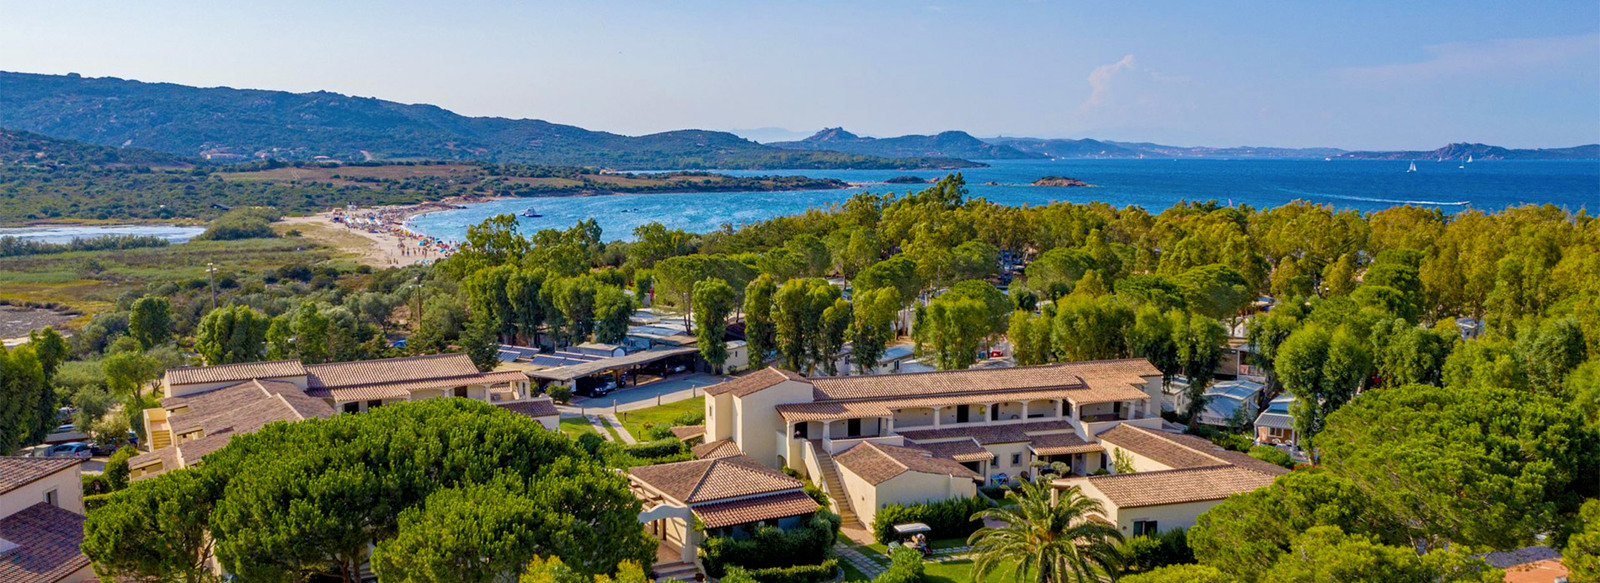 Hotel-Resort in Camping Village, in Costa Smeralda